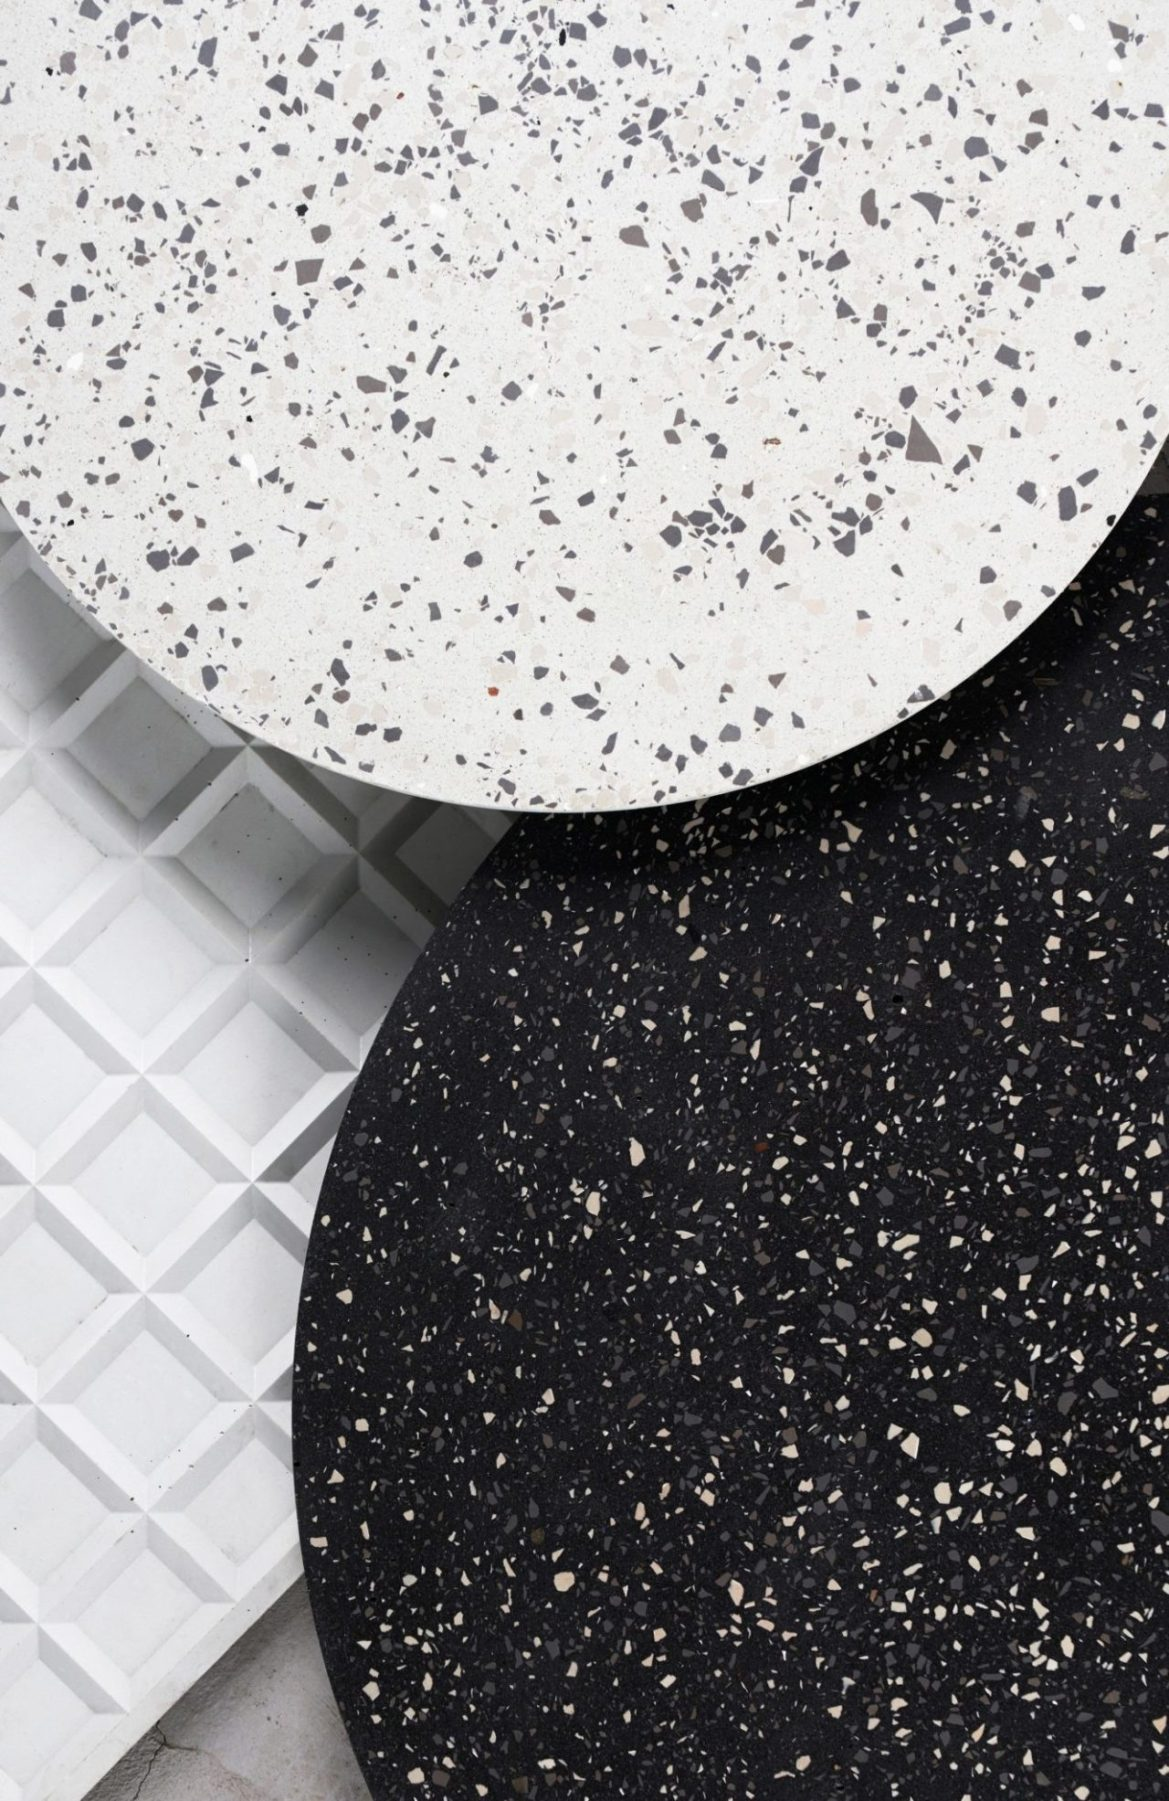 Nero D Africa Marmo tendances: the simplicity of black and white huskdesignblog